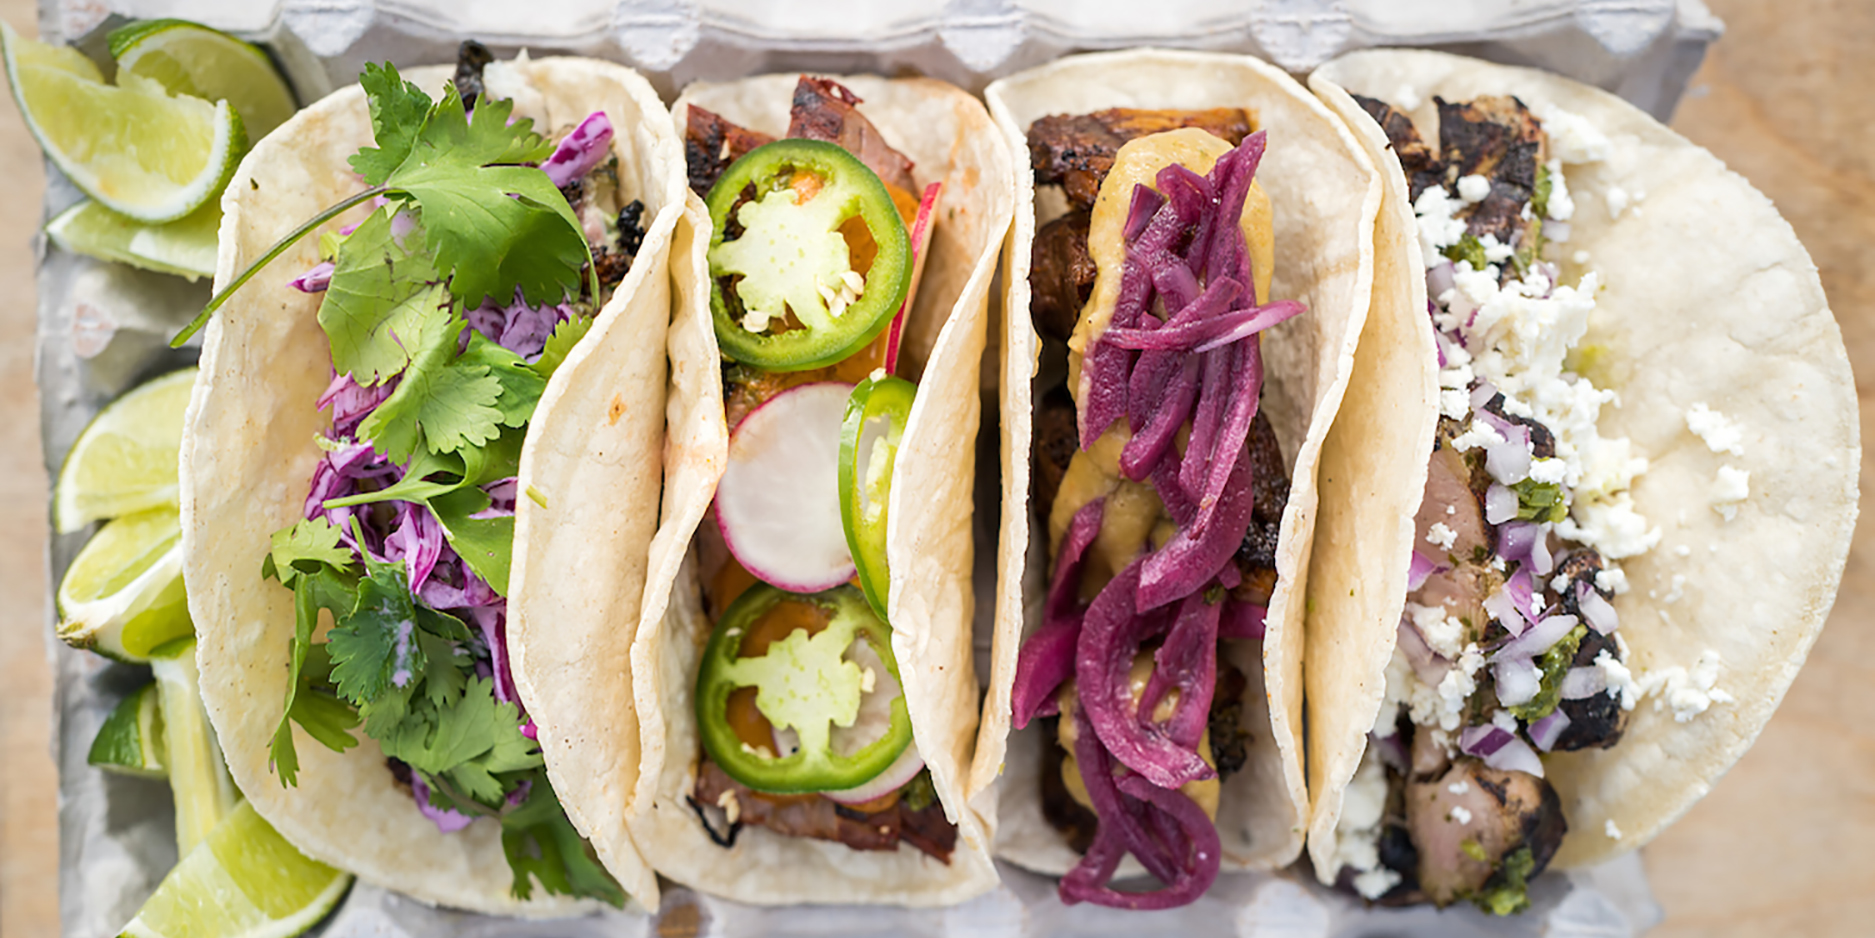 The 10 Best Quick Lunch Spots